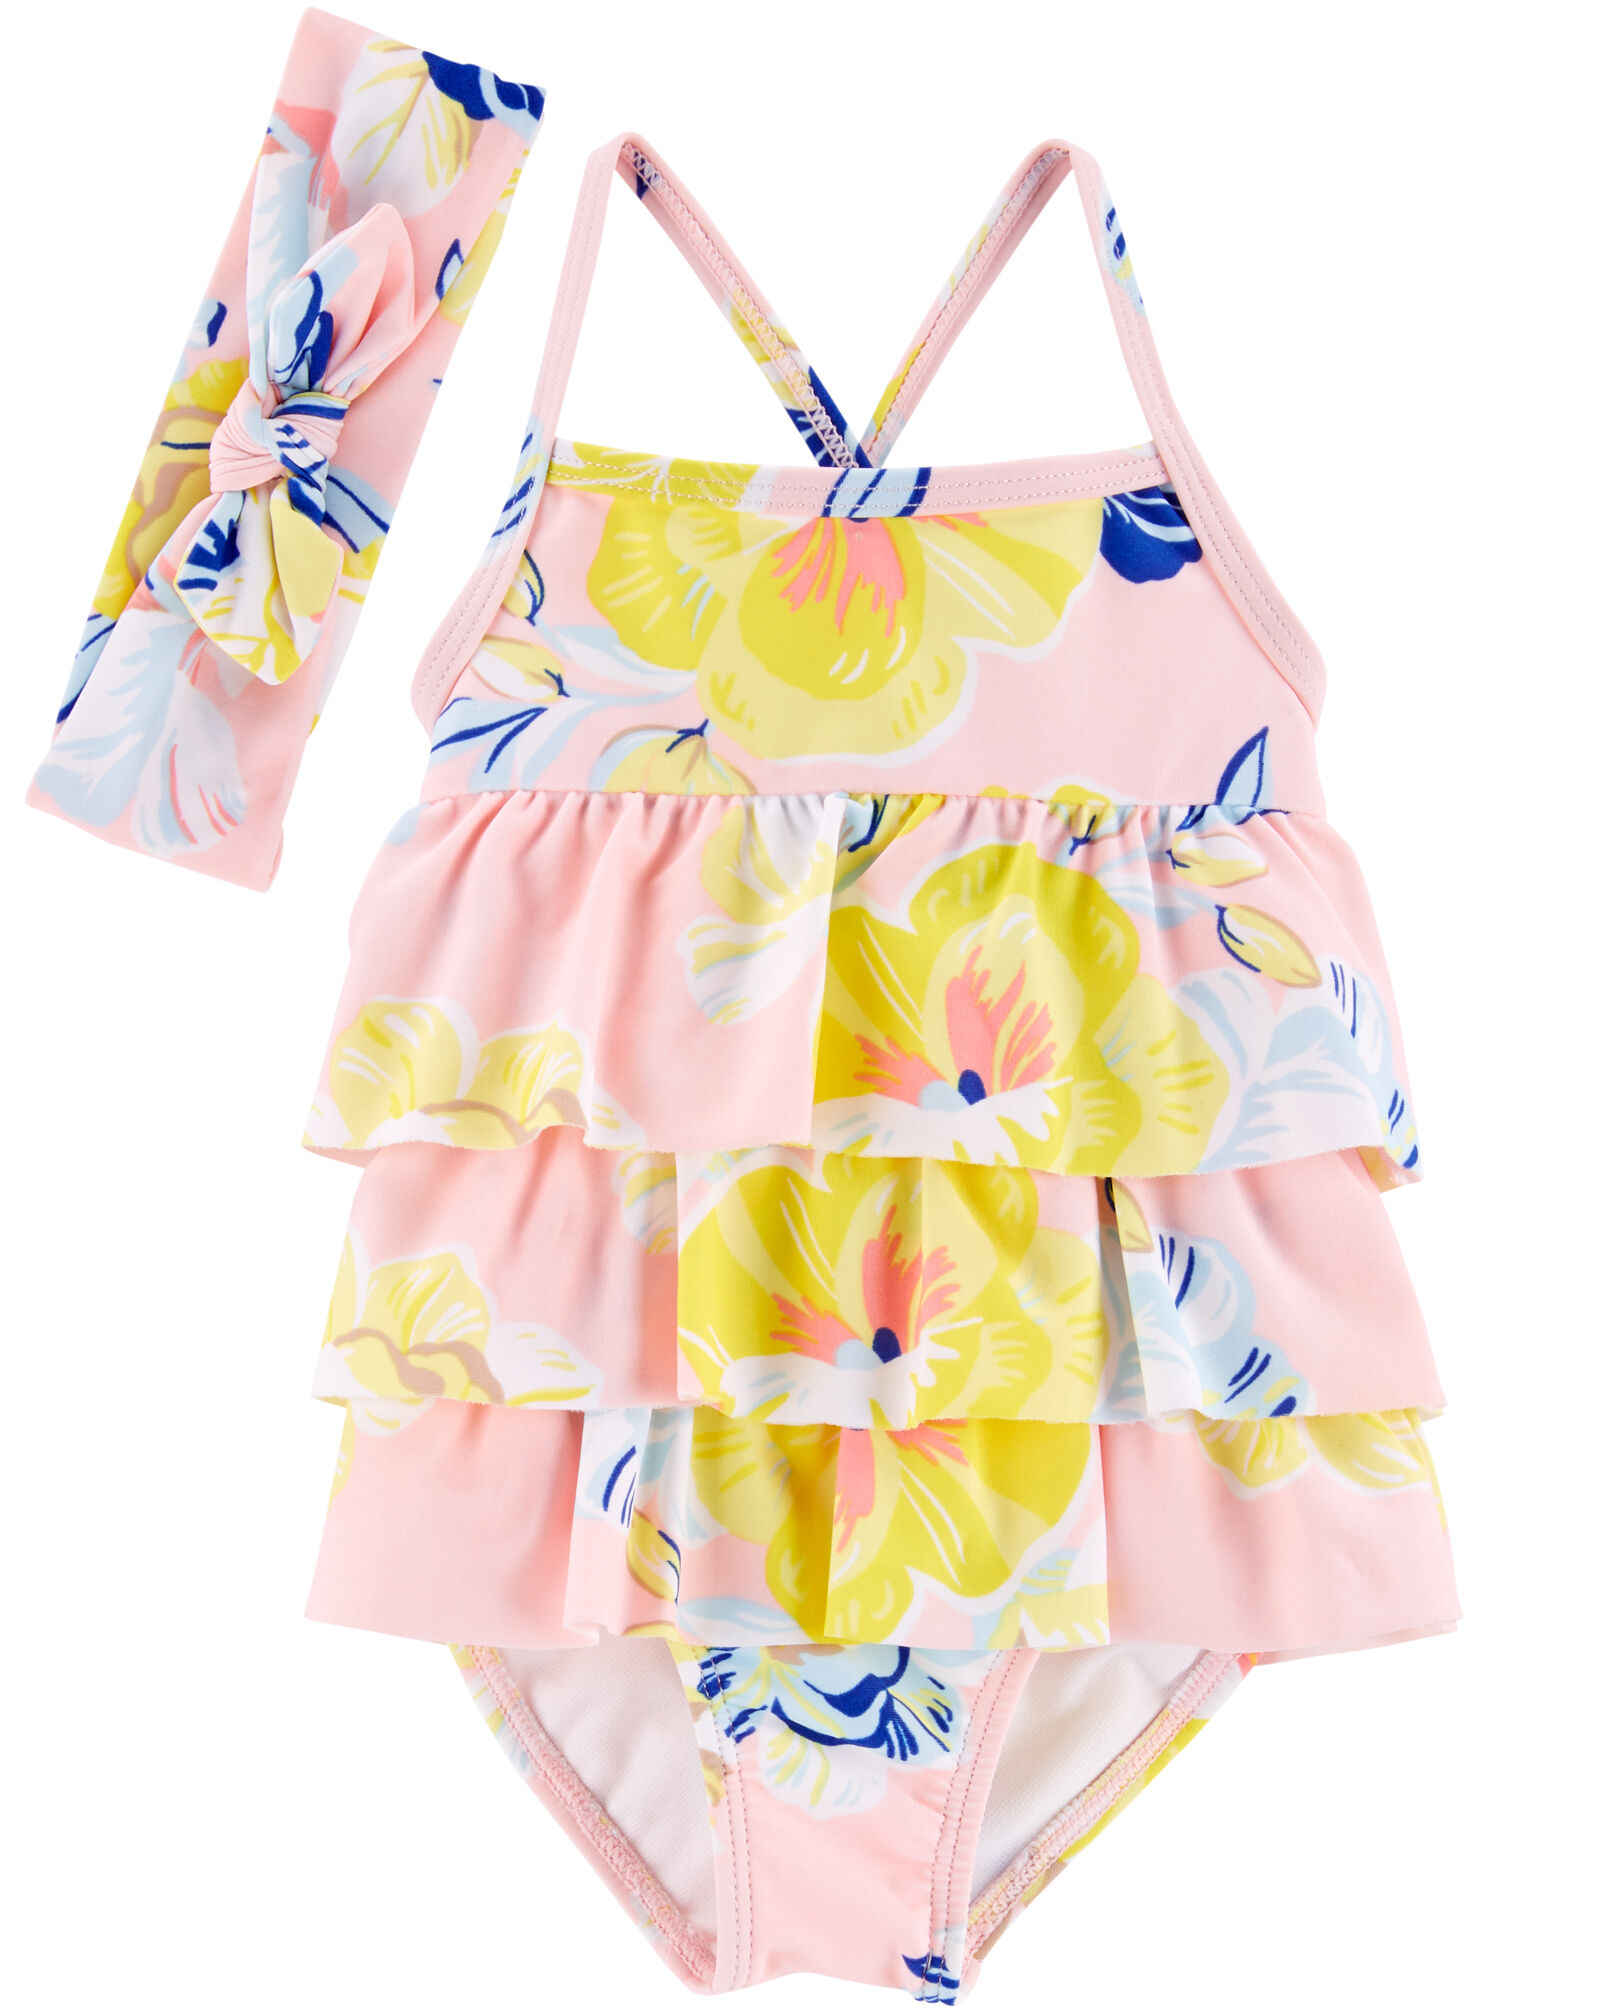 Carters Girls One Piece Tie Dye Swimsuit